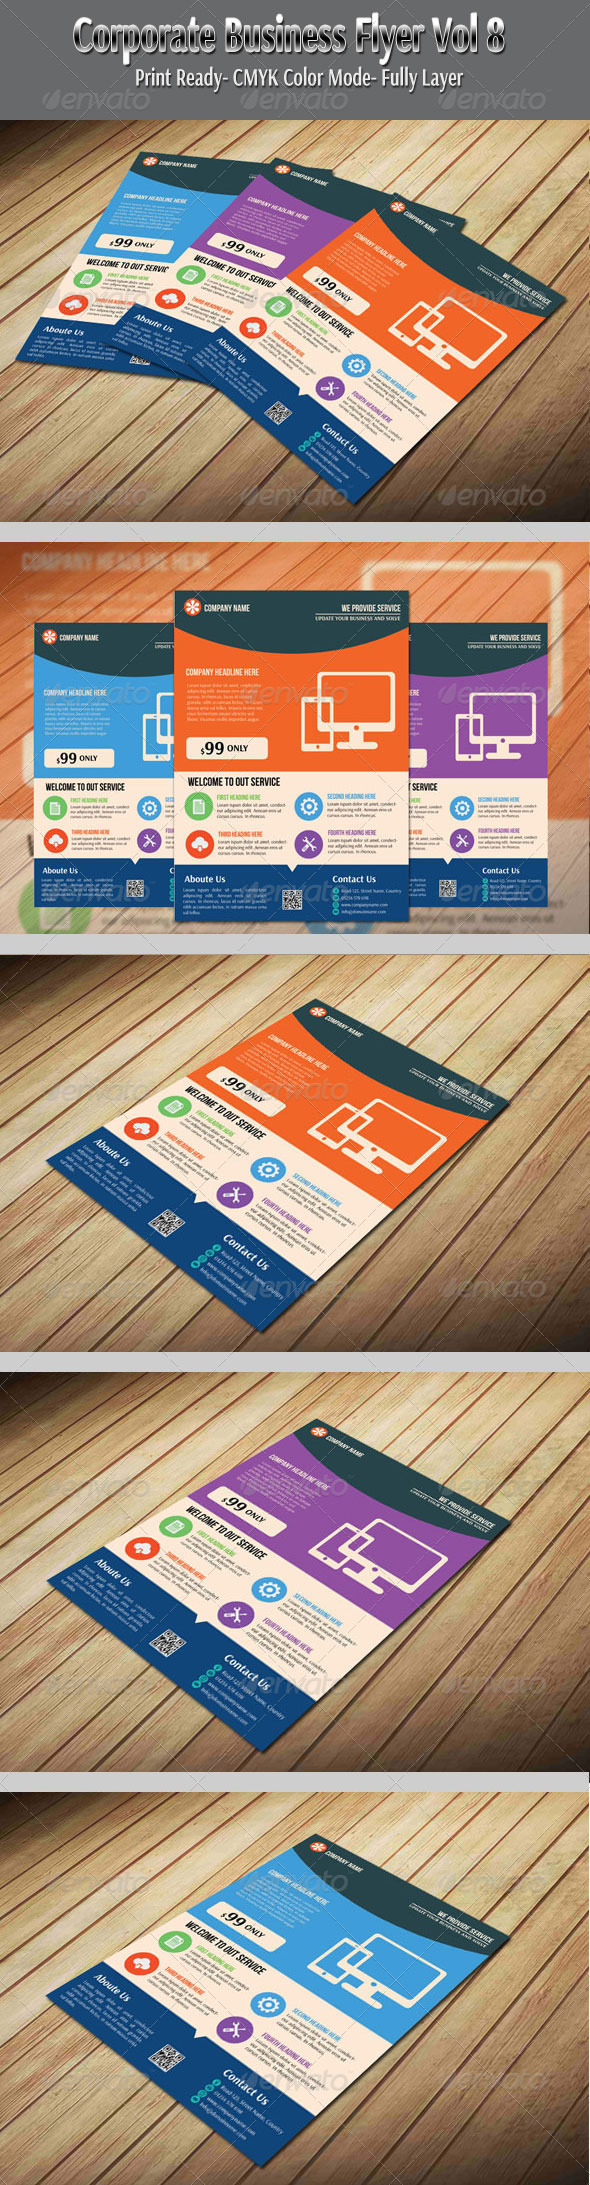 GraphicRiver Corporate Business Flyer Vol-8 6435261